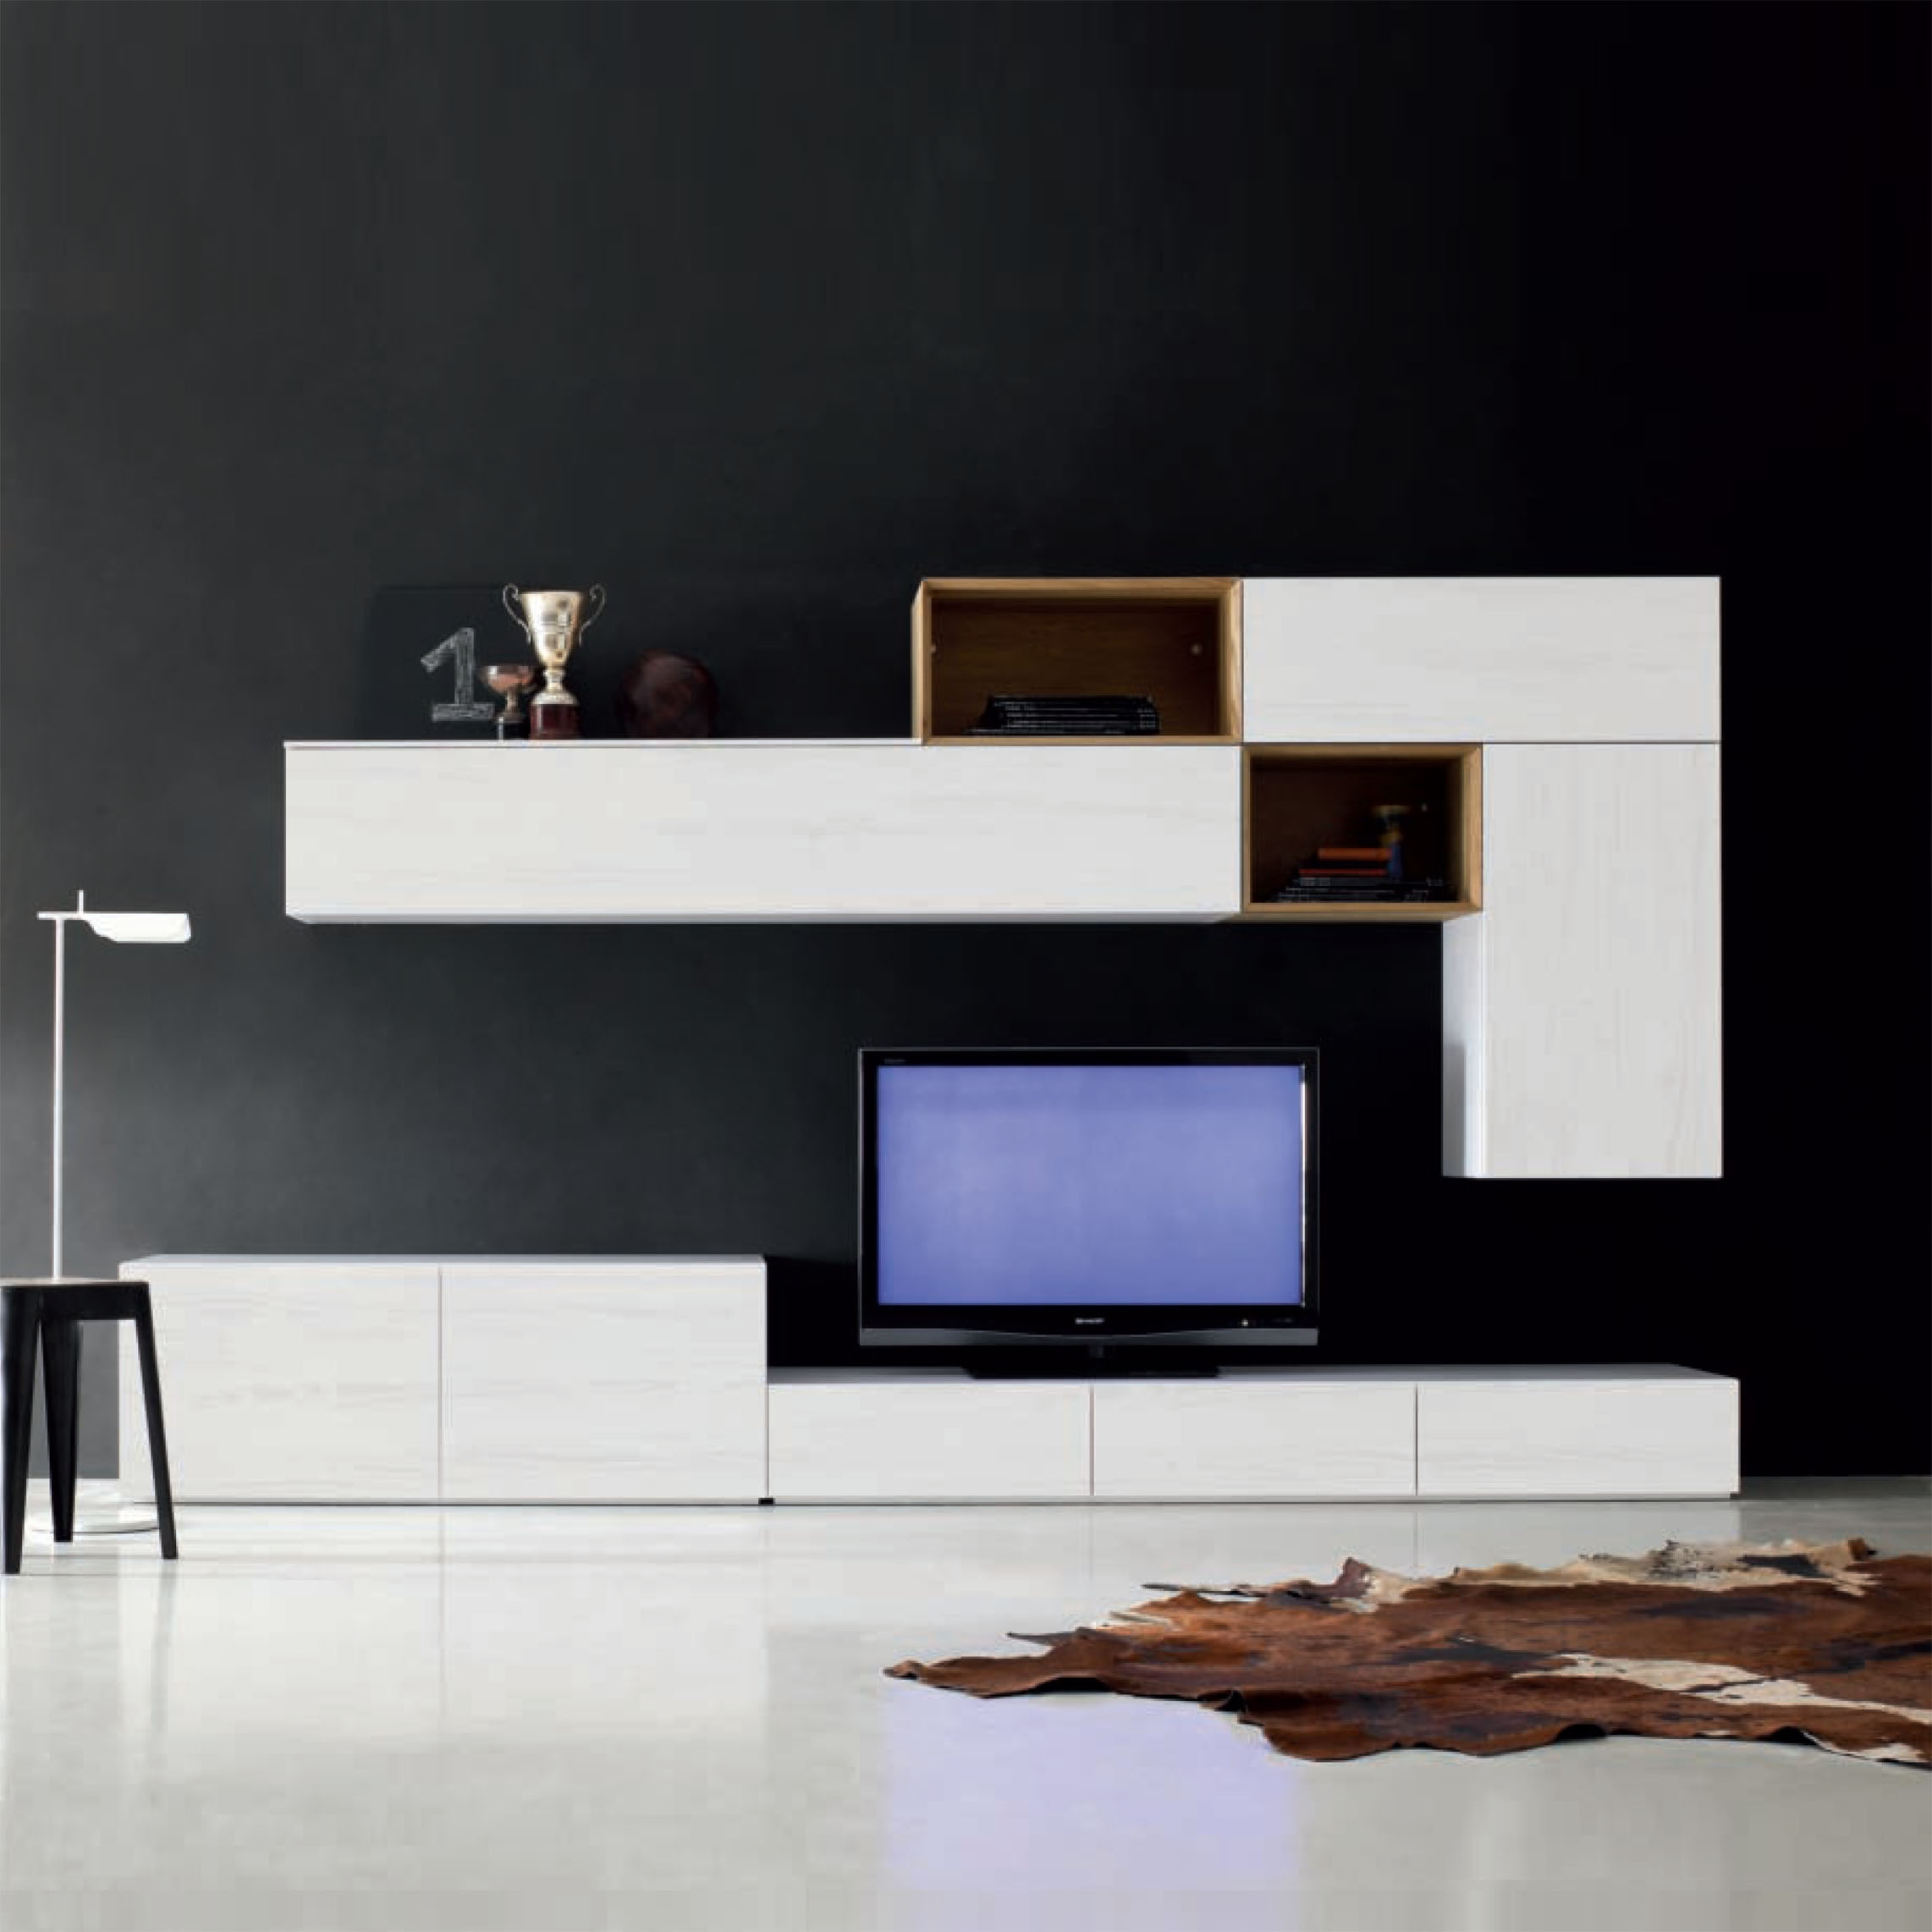 Bespoke Tv Units Wall Storage Systems My Italian Living Ltd With Bespoke Tv Stand (View 6 of 15)